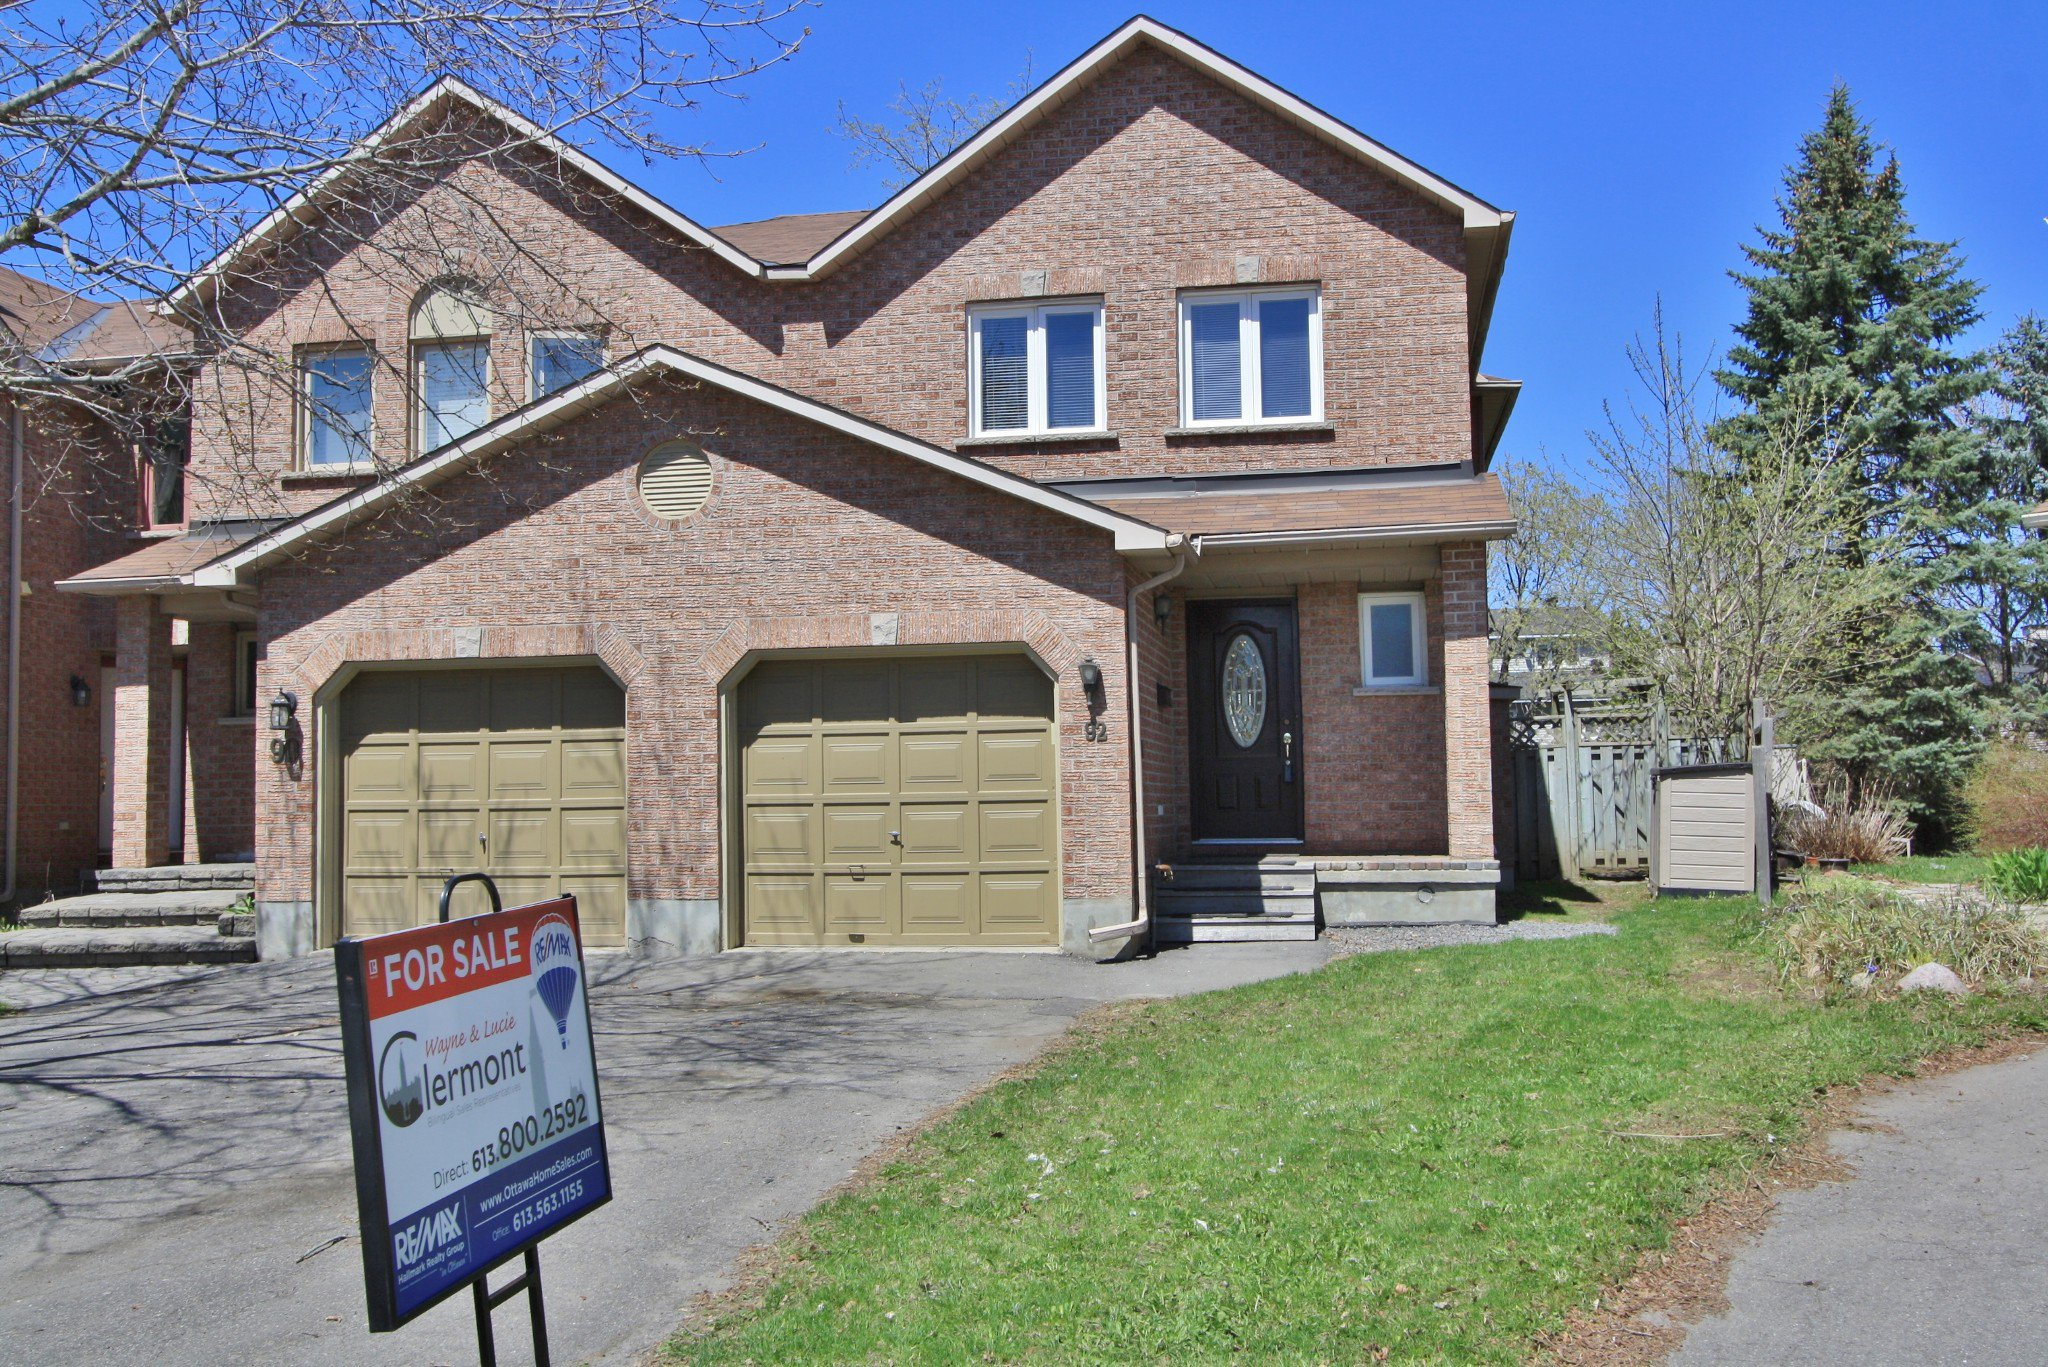 Main Photo: 92 Southport Dr in Ottawa: House for sale (Greenboro)  : MLS®# 1107375